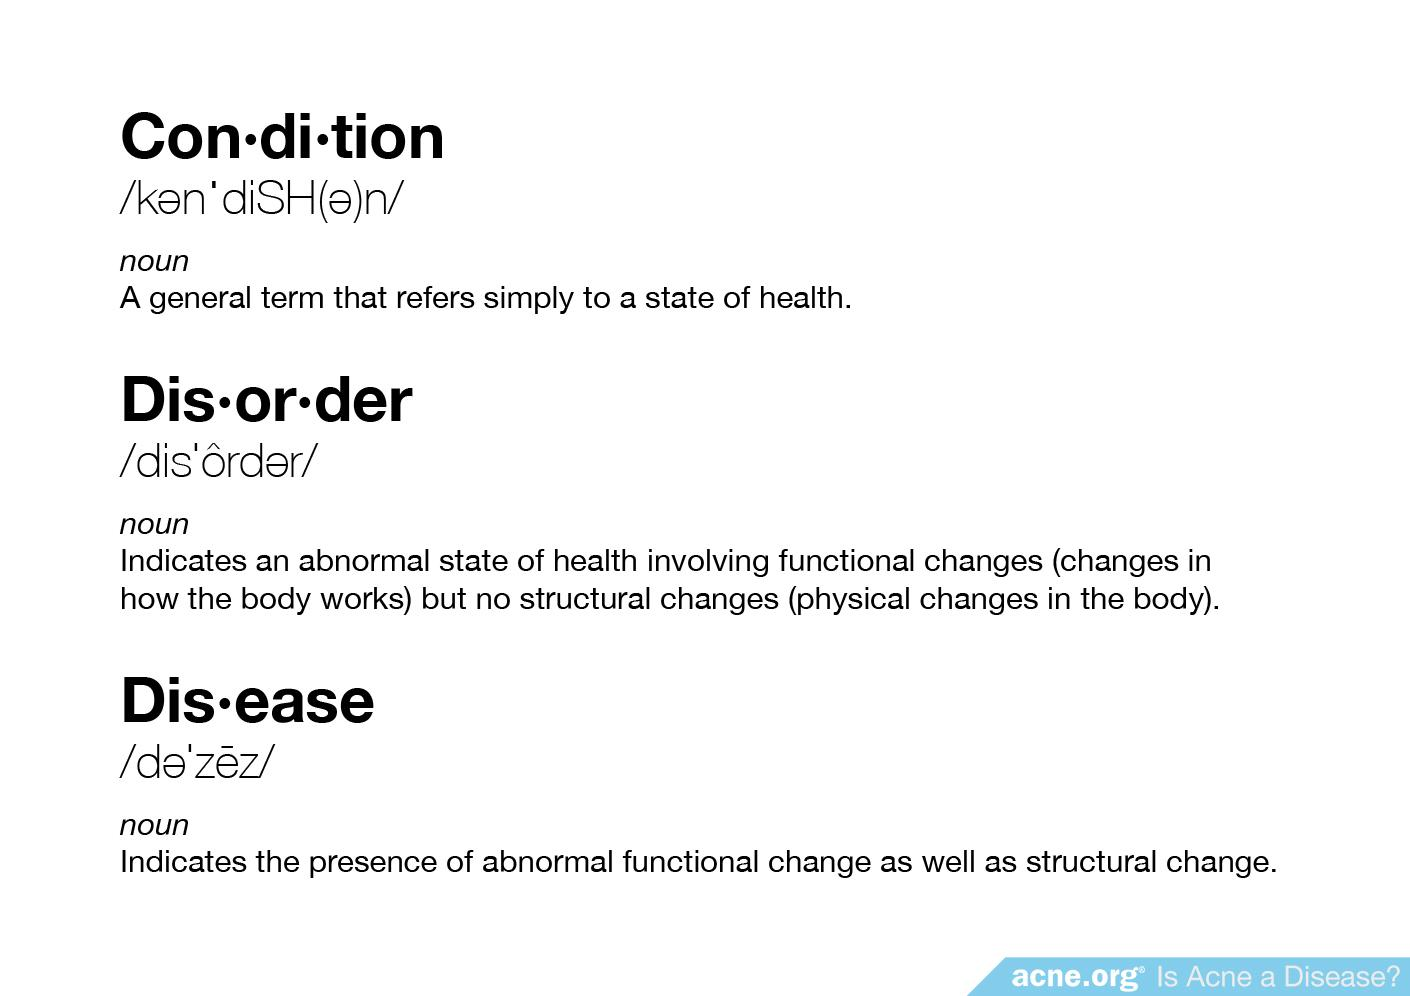 Definitions of Condition, Order, Disease